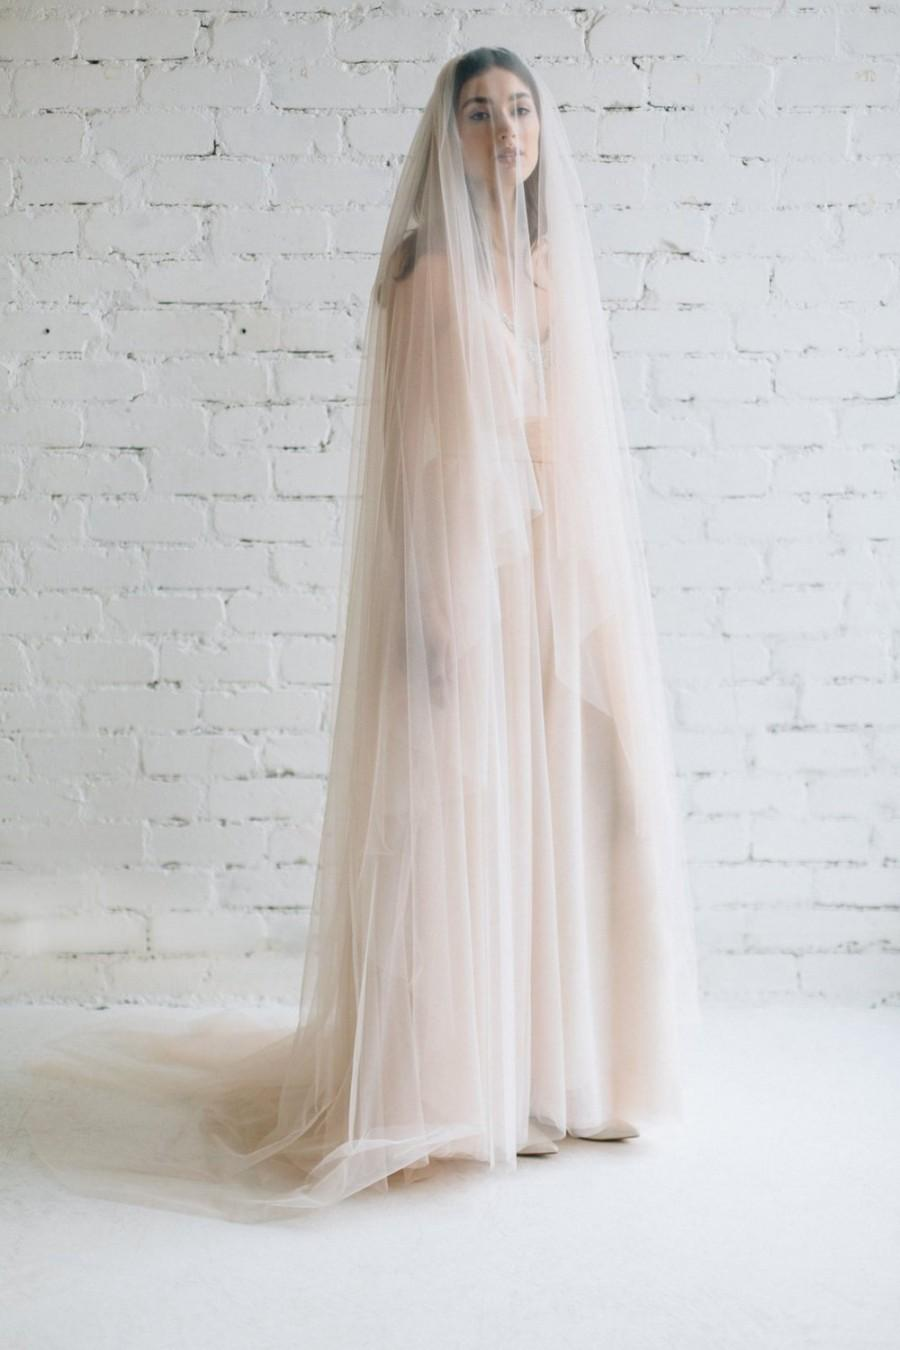 Wedding - Blush Wedding Veil, Cathedral Veil , Wide Tulle Veil, Veil with Blusher ,Circle Drop Veil, Blusher Veil, Long Tulle Veil -  JULIA